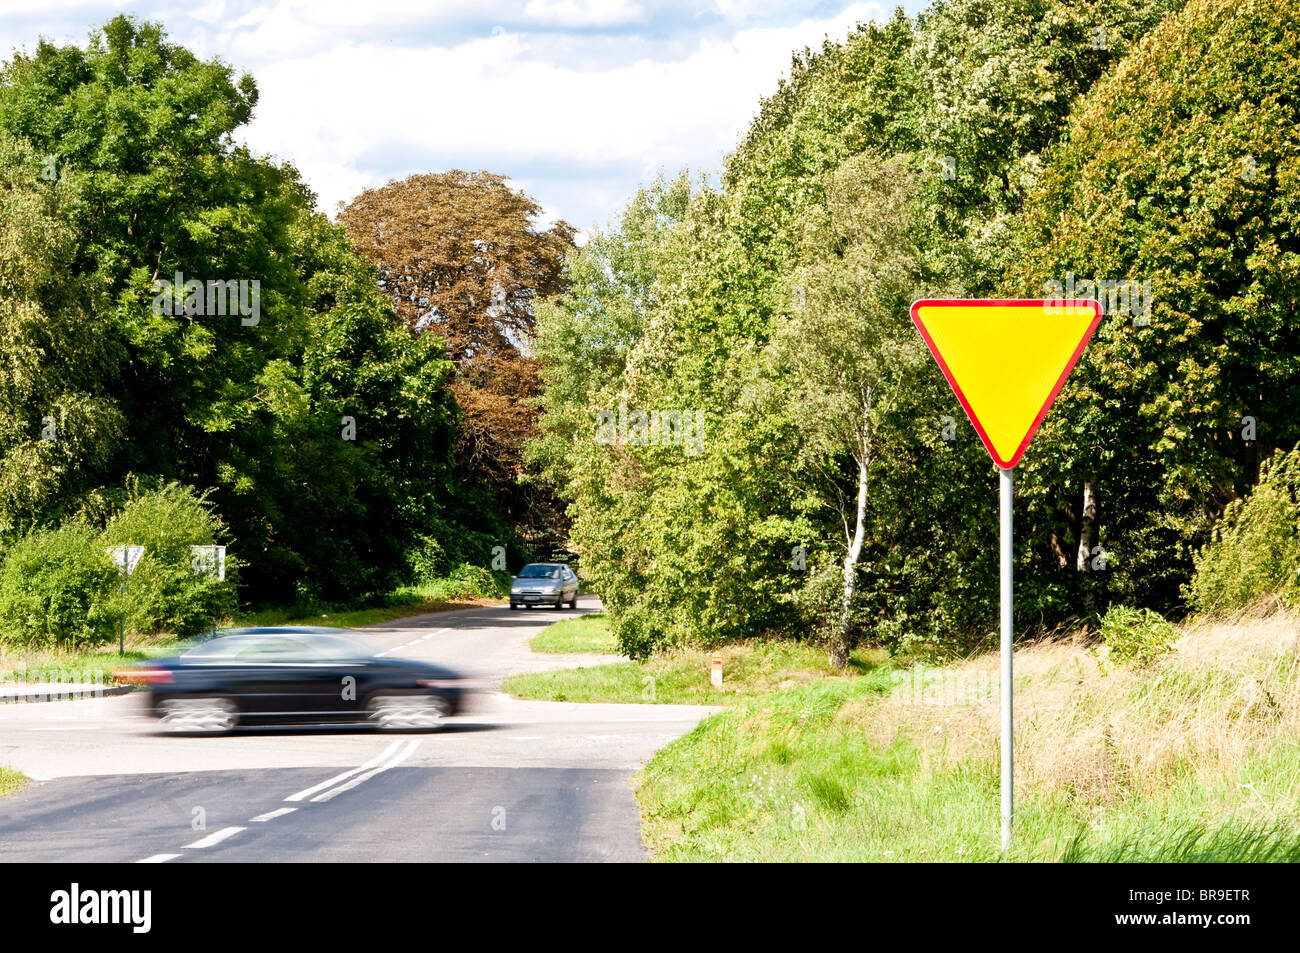 yield sign near crossroad and rushing car - Stock Image